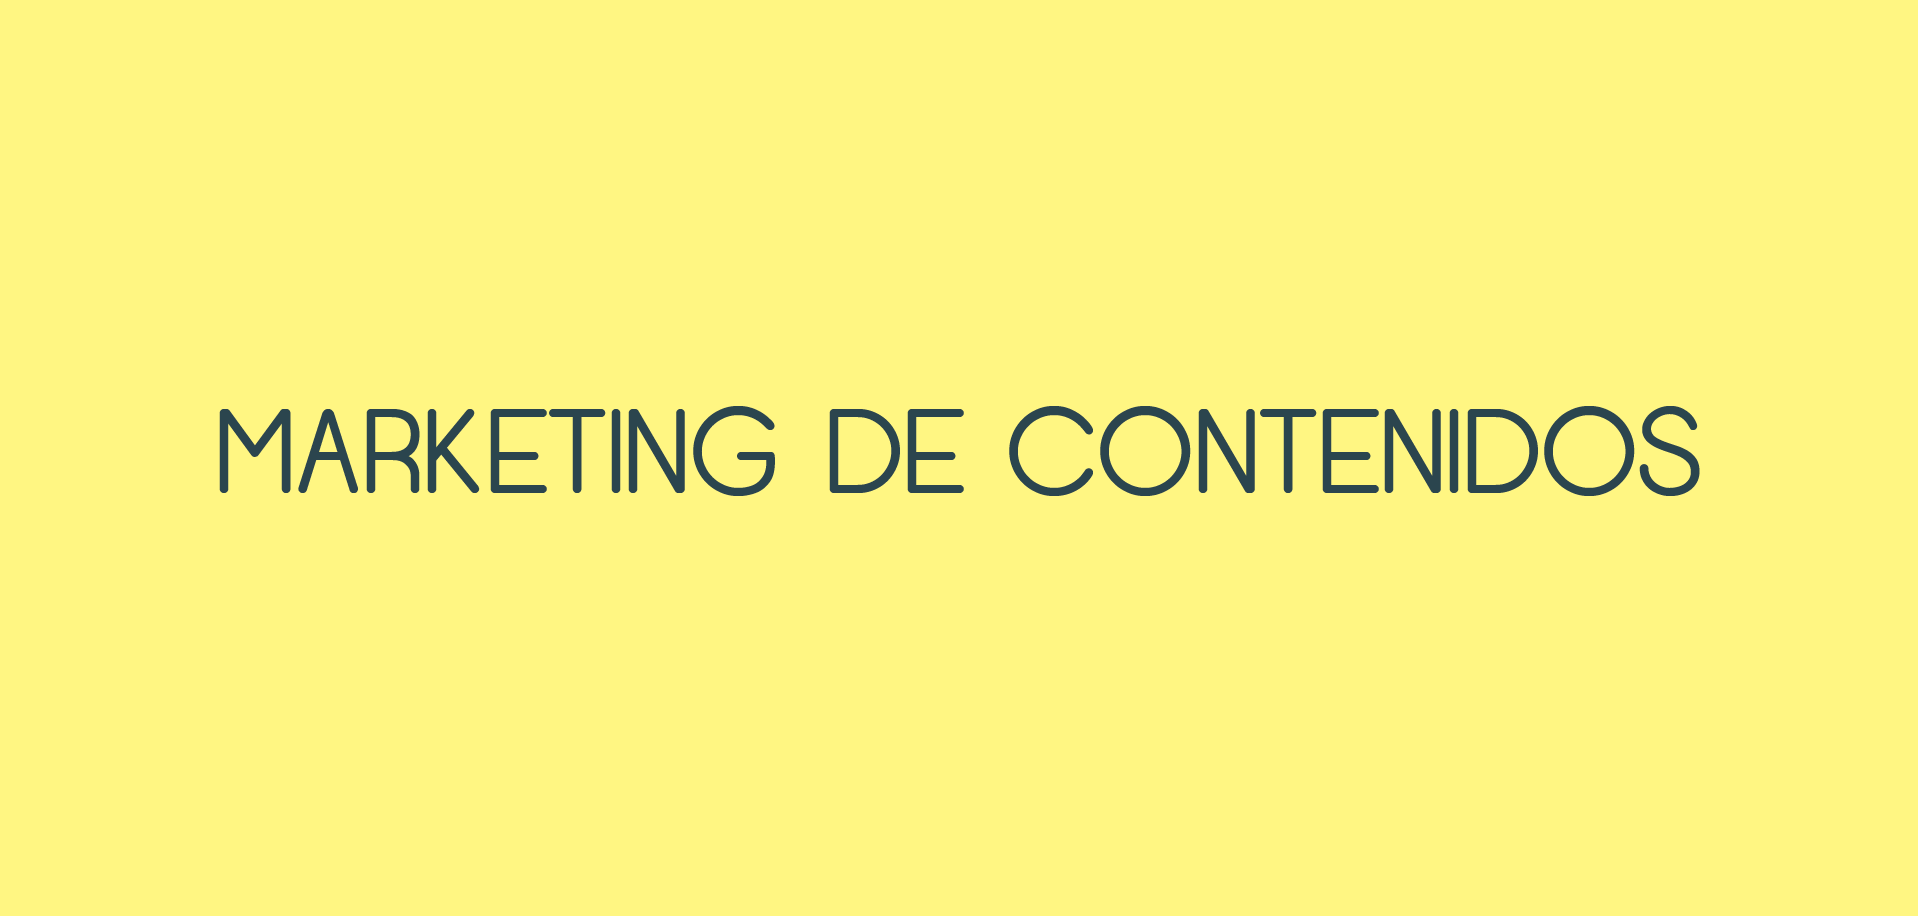 Marketing de contenidos |Tendencias marketing online 2017